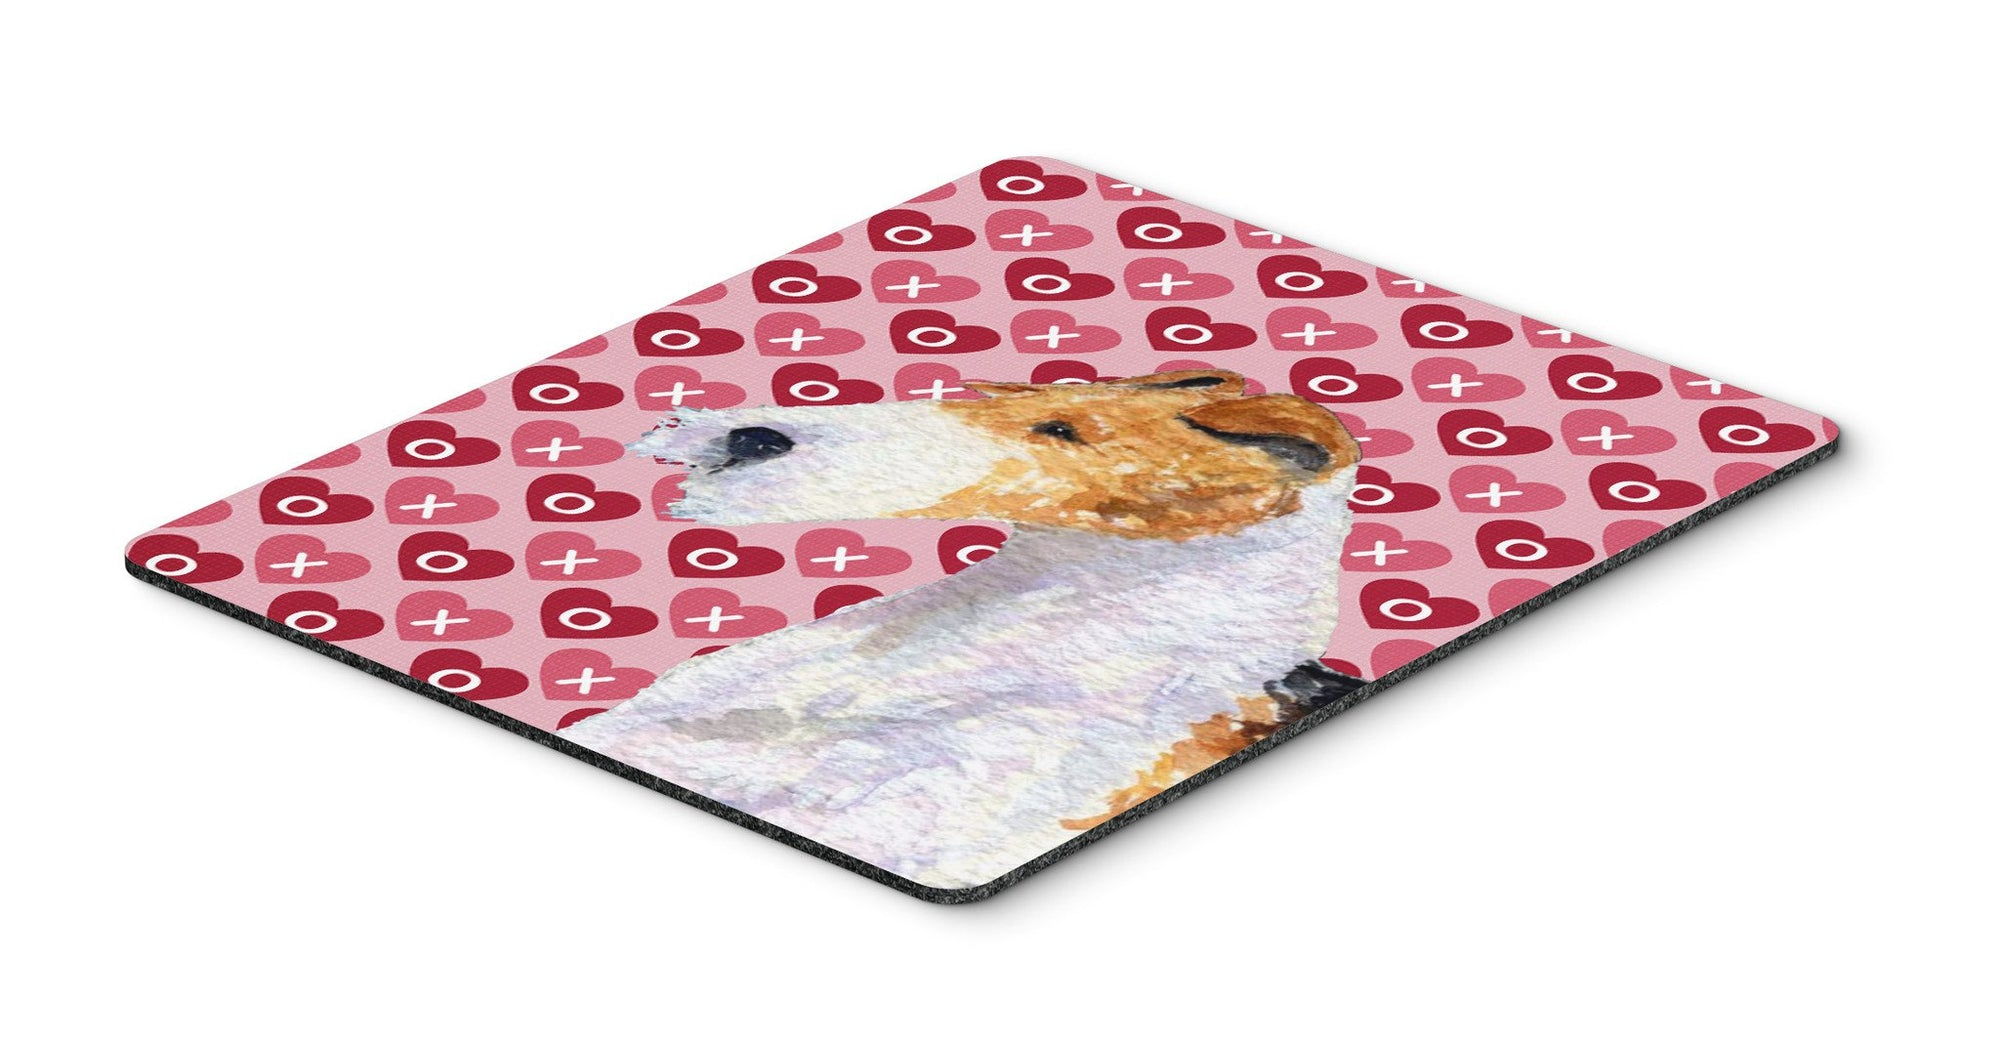 Fox Terrier Hearts Love and Valentine's Day Mouse Pad, Hot Pad or Trivet by Caroline's Treasures